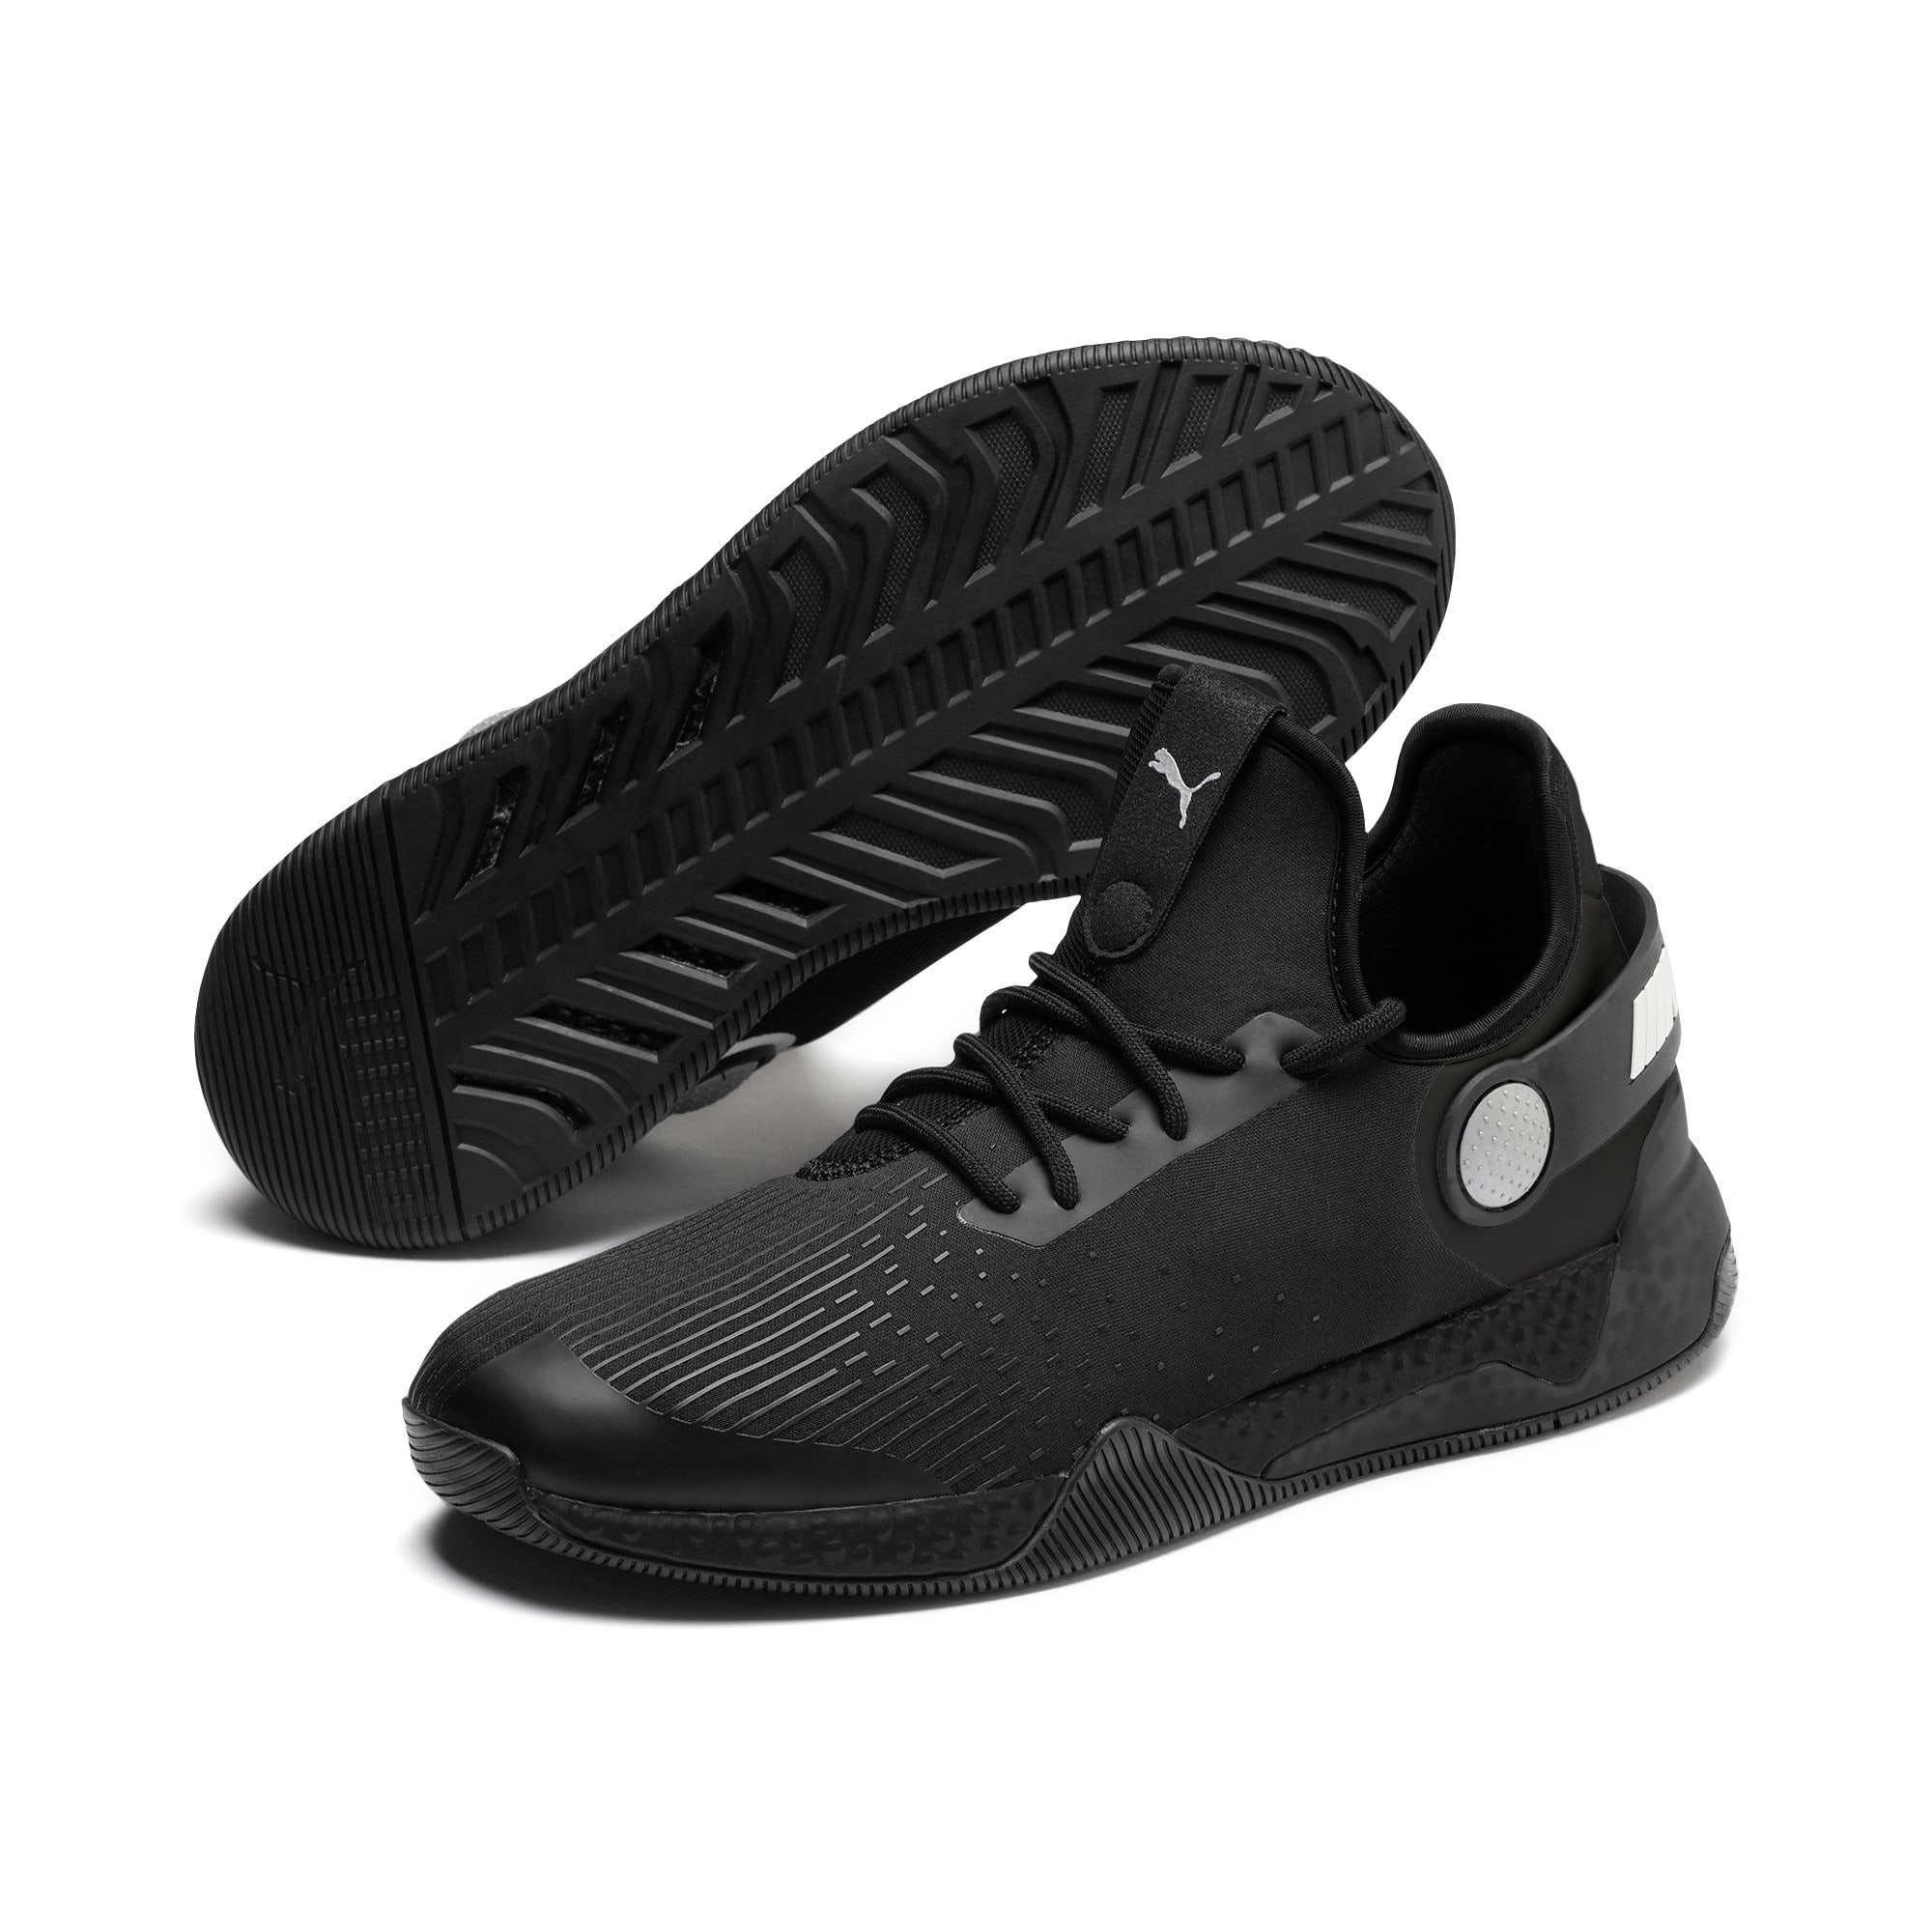 Thumbnail 3 of BMW M Motorsport HYBRID Men's Running Shoes, Black-Black-White, medium